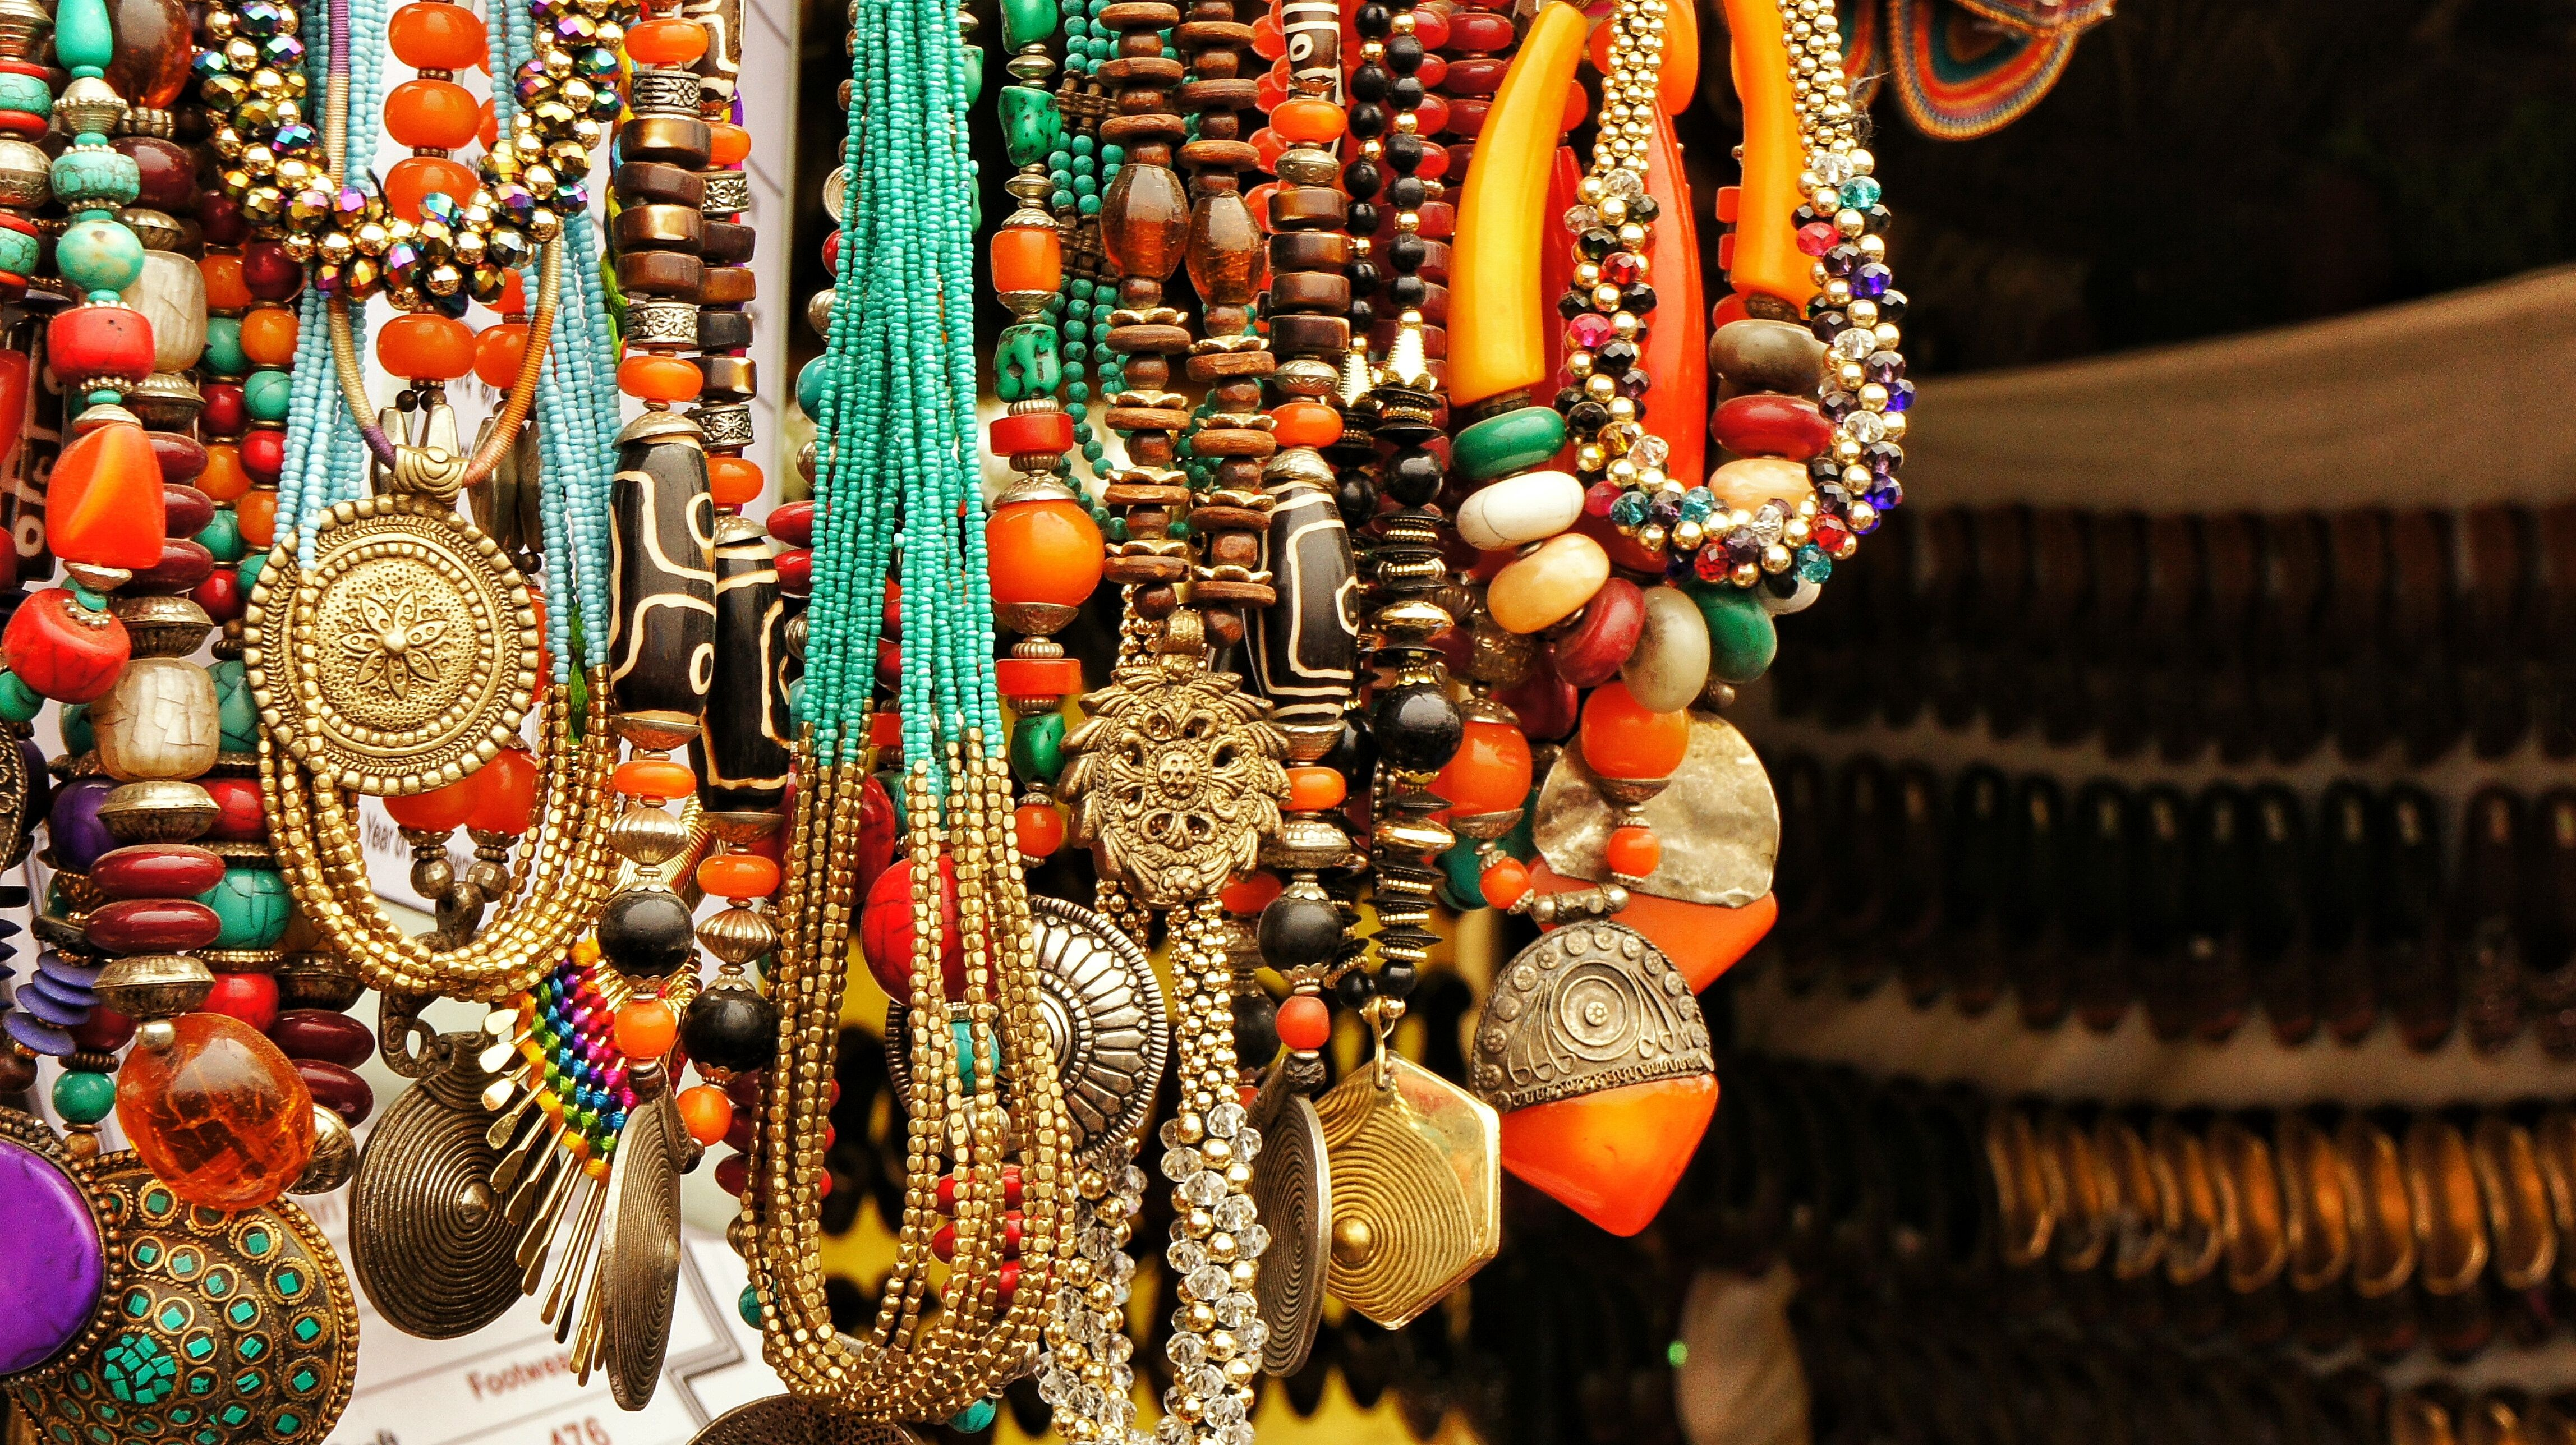 Jewelry hangs for sale in Langkawi, Malaysia